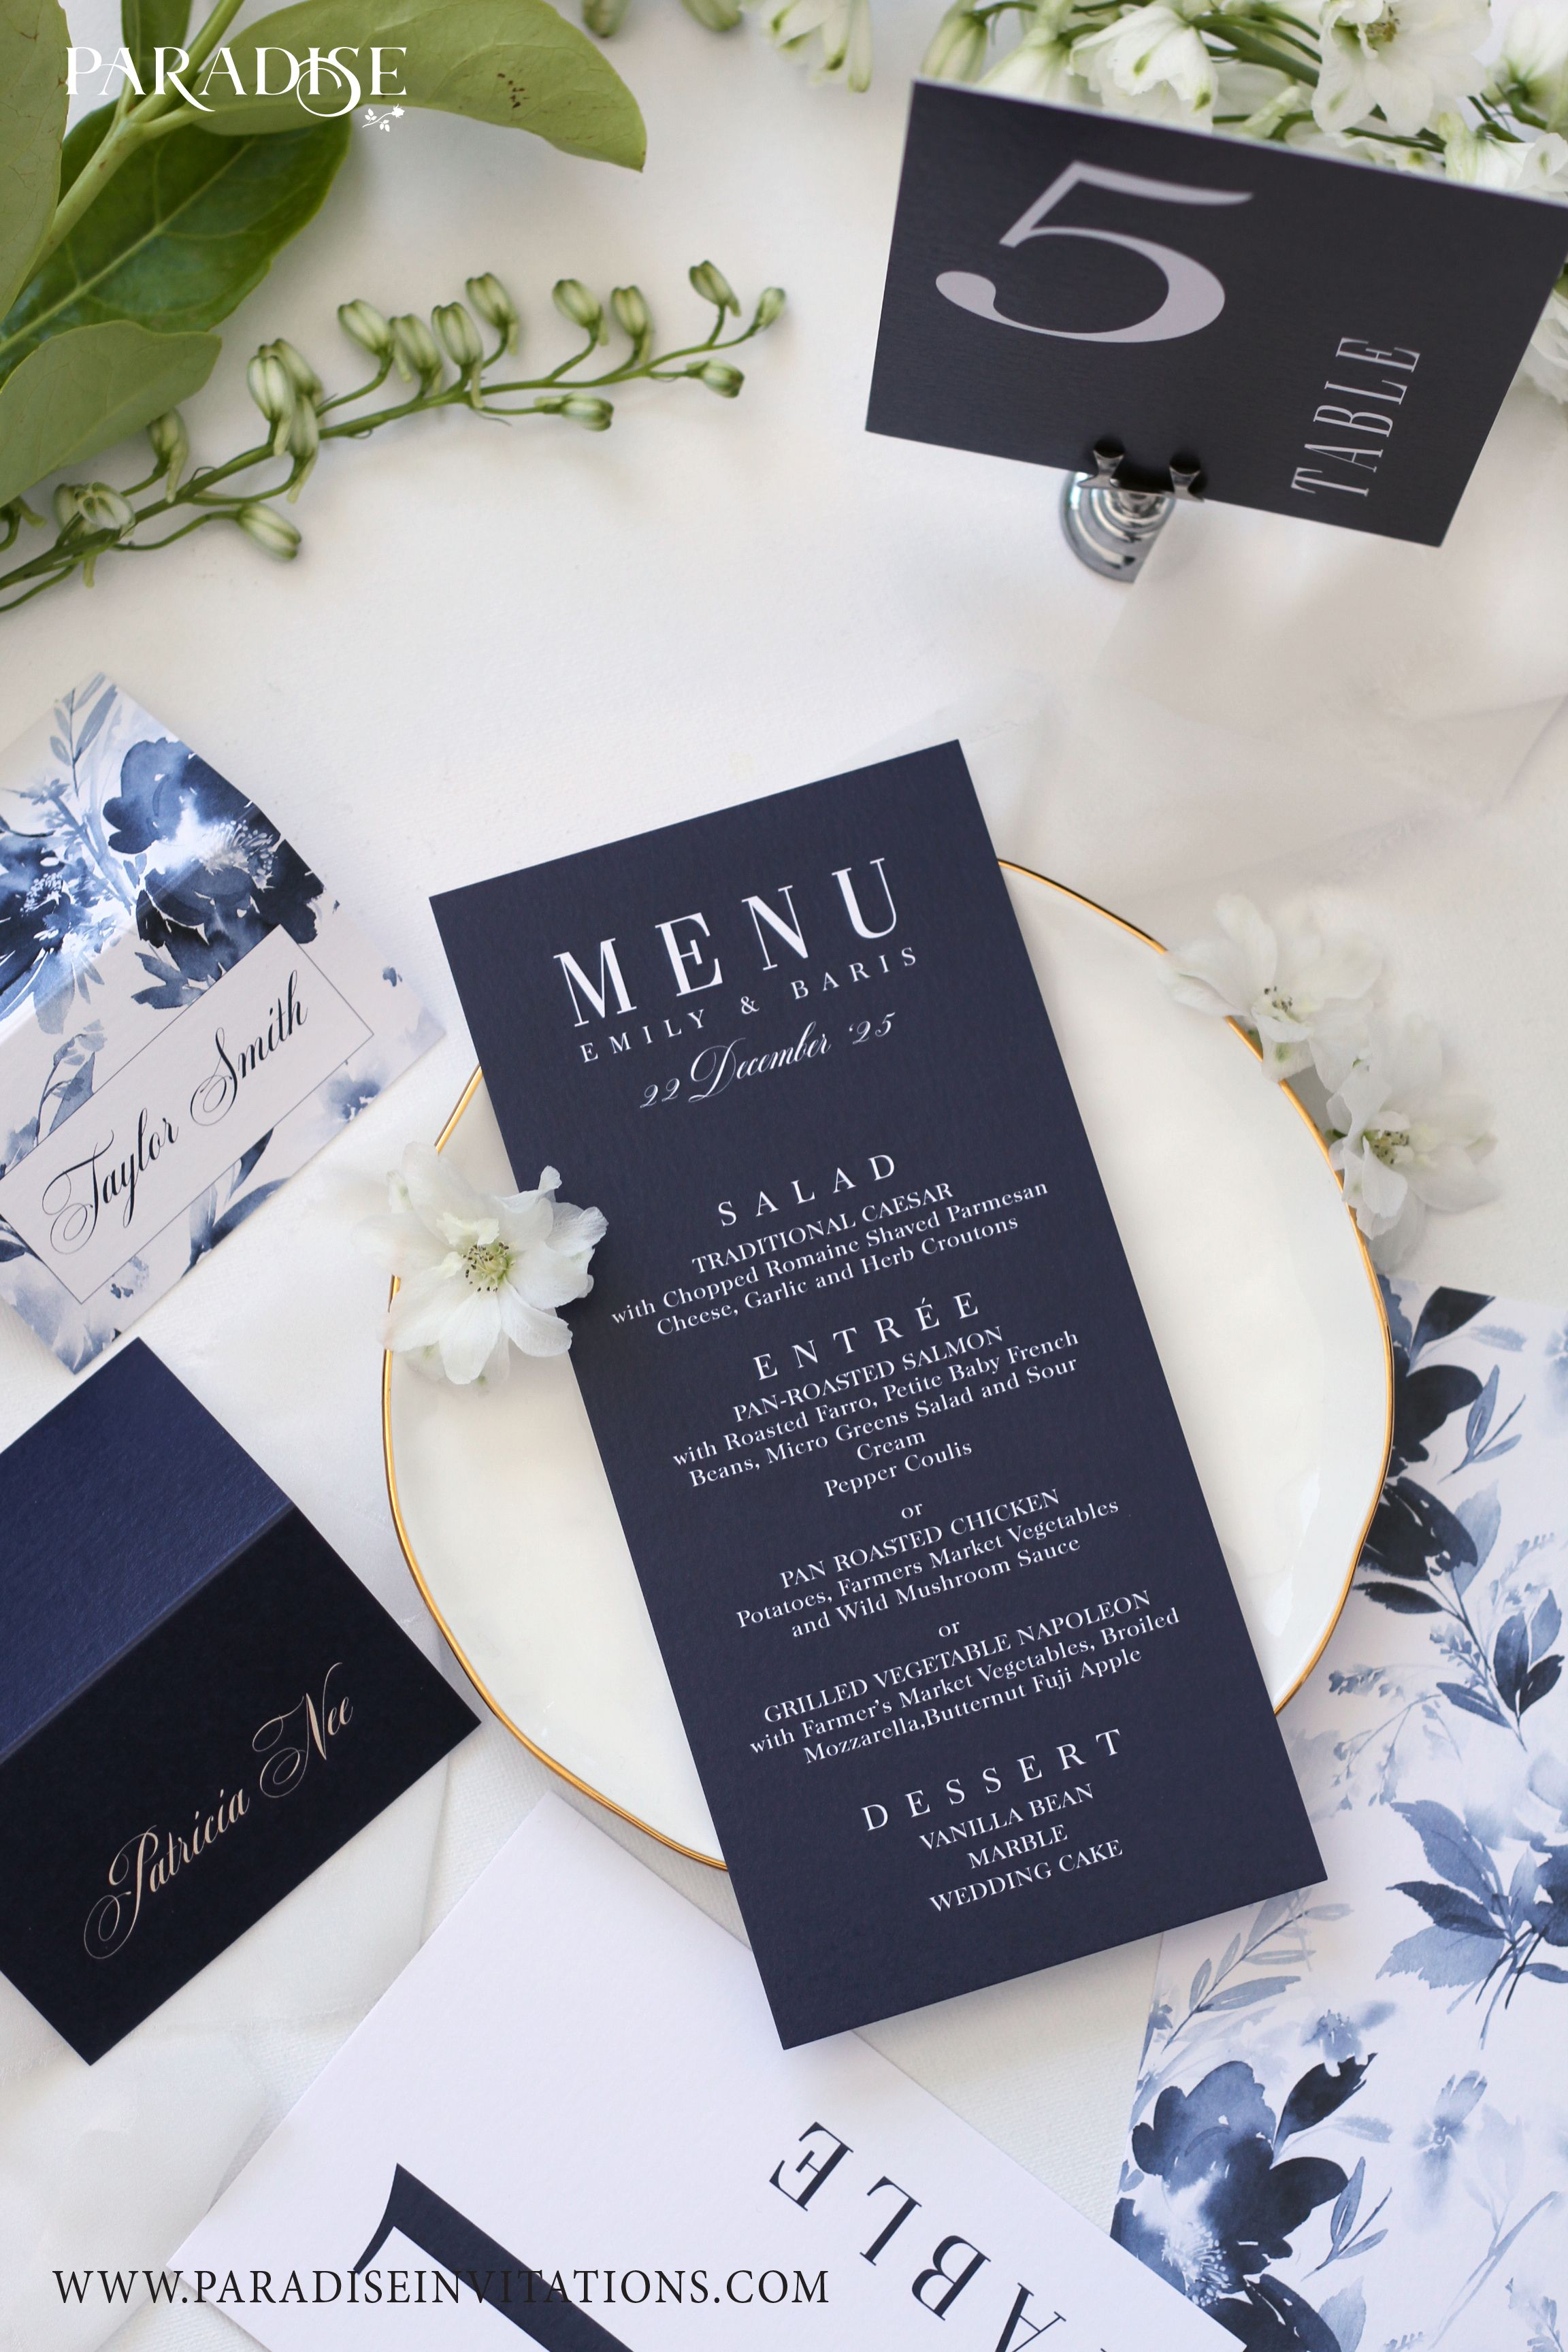 Elegant Navy Blue Wedding Menu #wedding #menu #weddingmenu #weddingstationery #elegant #modern #classy #calligraphy #calligraphywedding #calligraphyweddingstationery #wreath #navyblue #navy #blue #weddingmenuideas